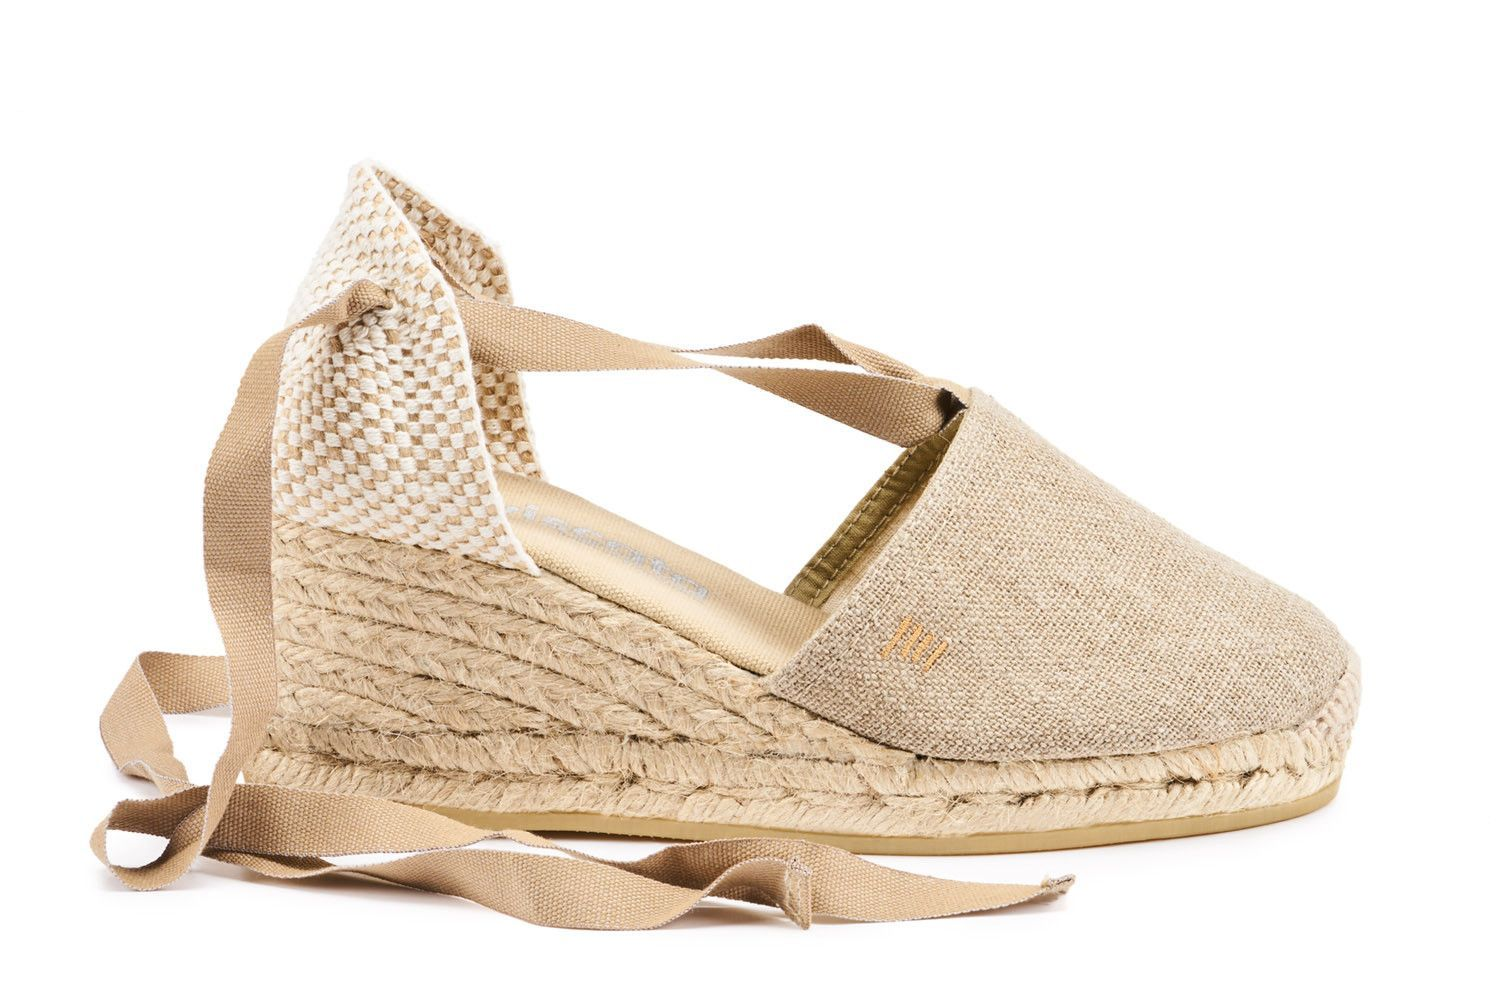 5352e989454 Escala Linen Wedges - Taupe | Products | Wedges, Spanish espadrilles ...